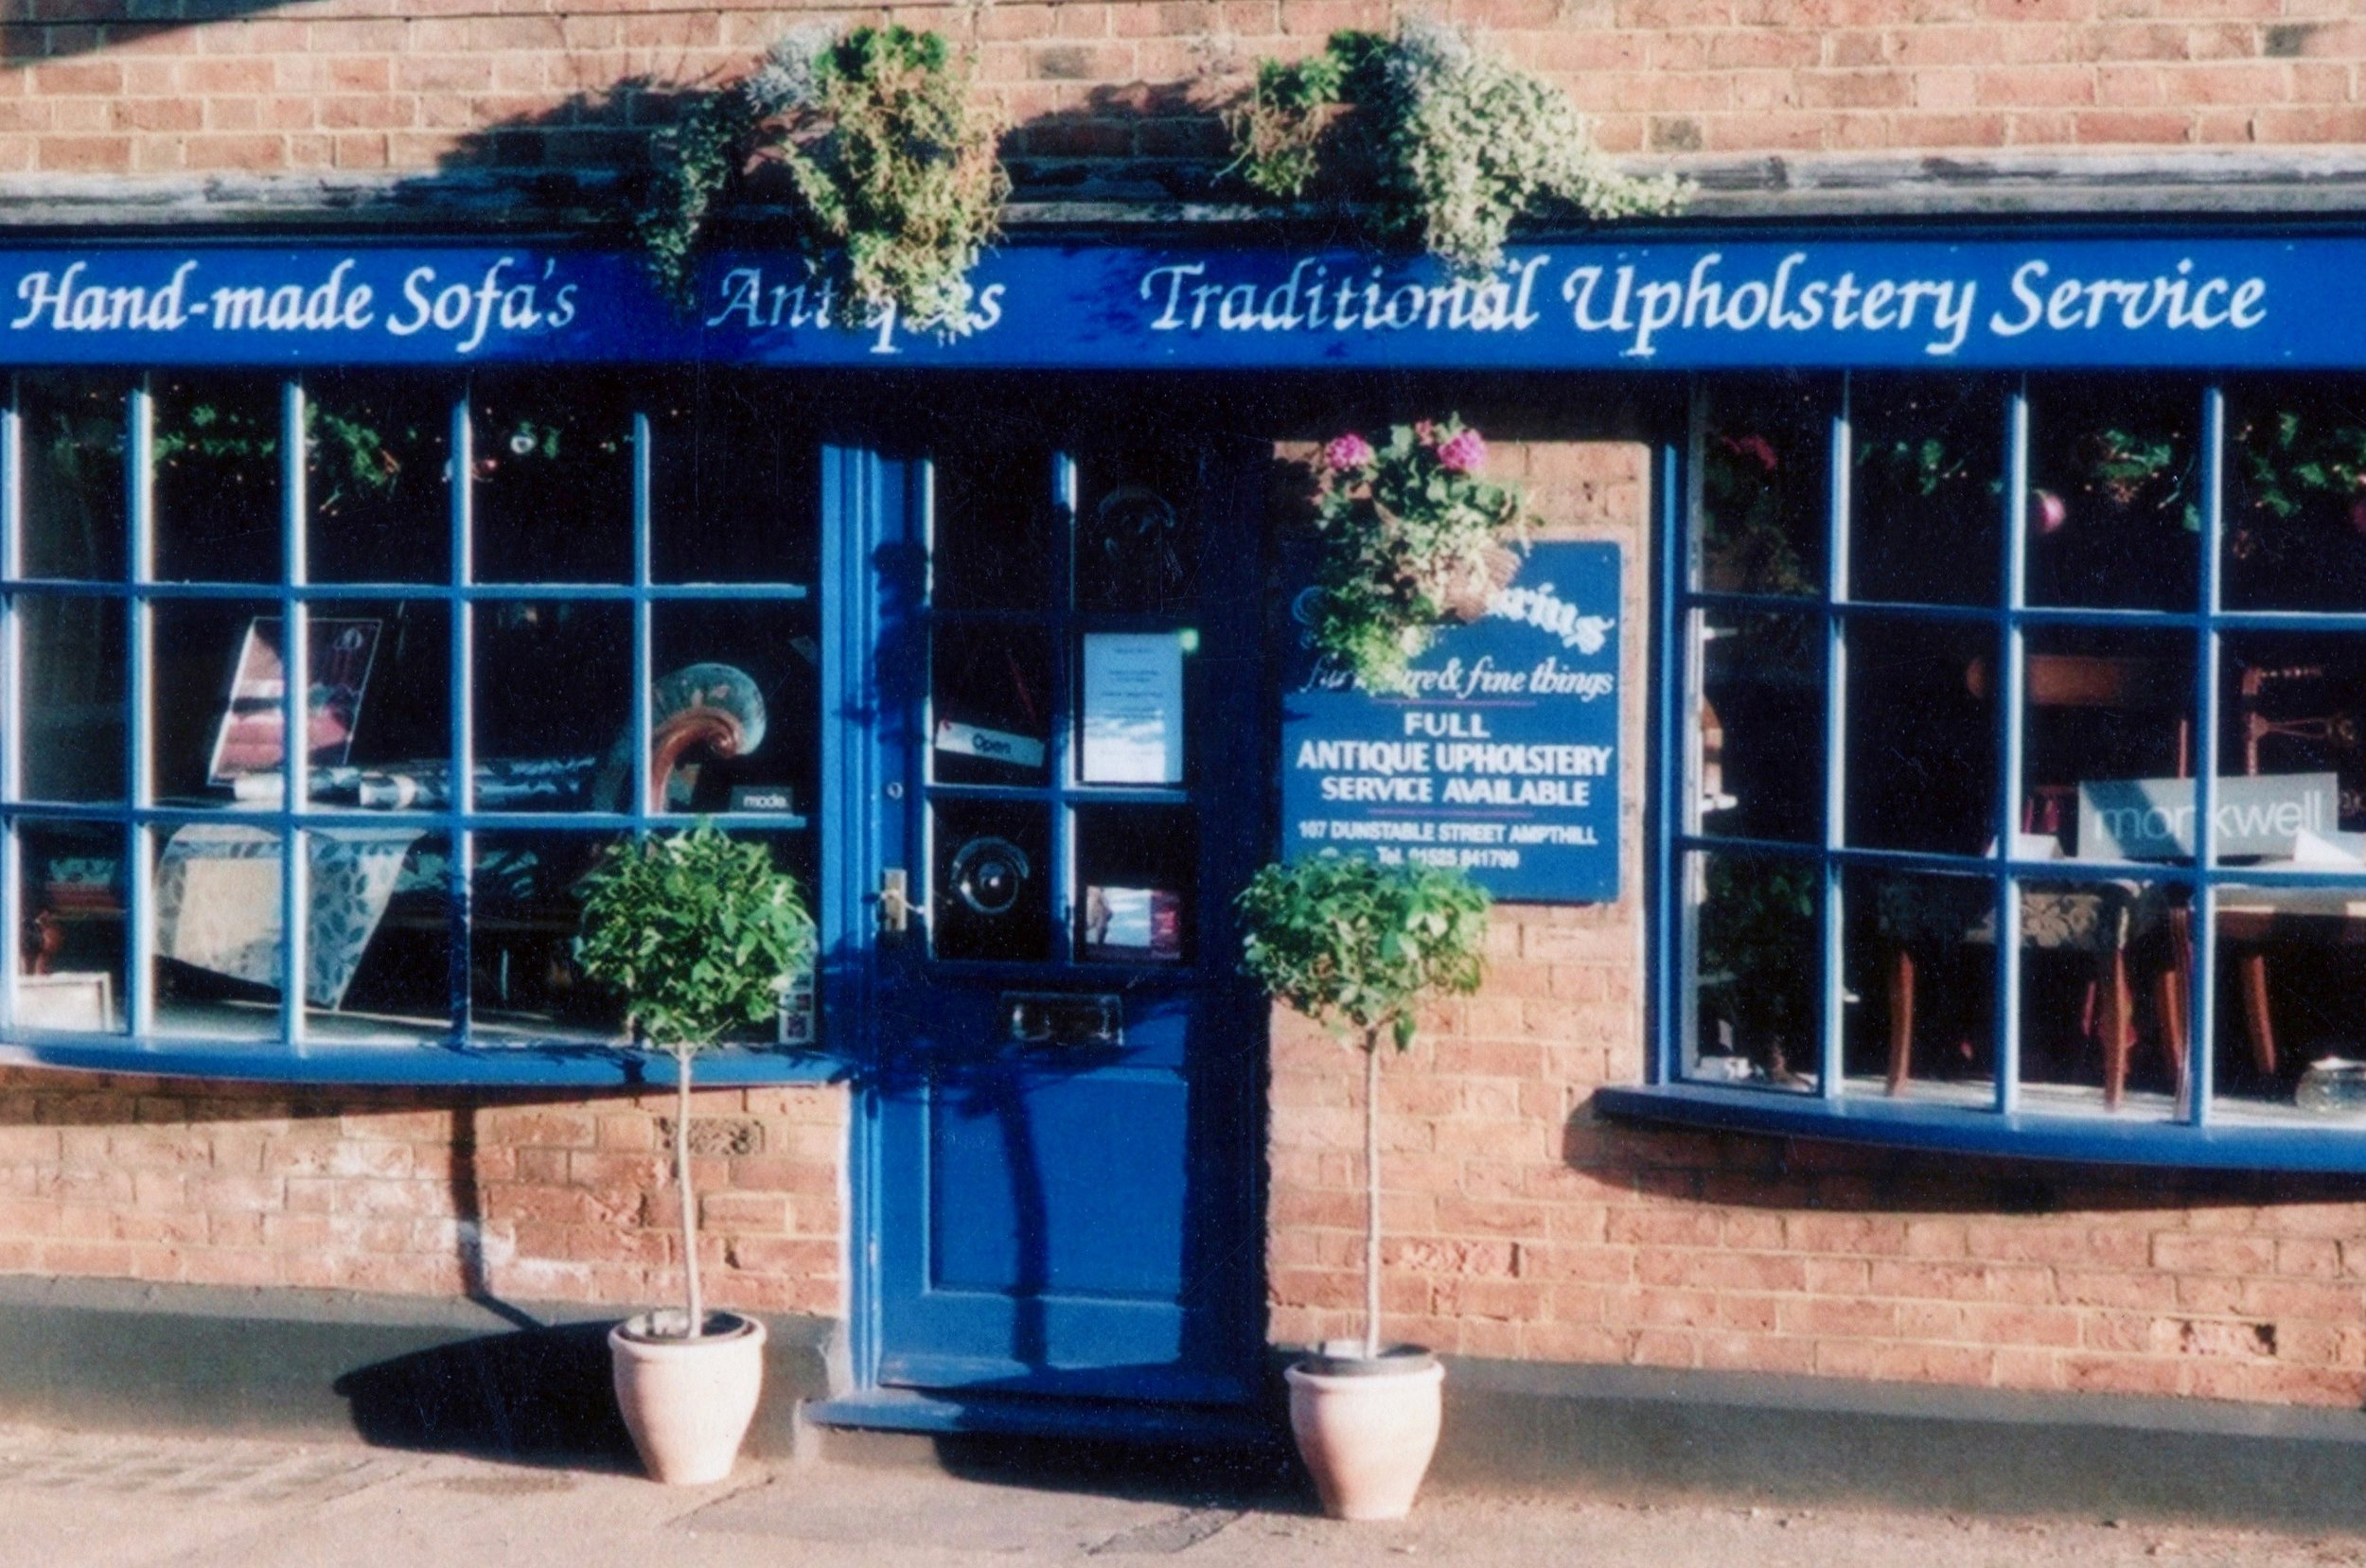 Antiquarius, Ampthill, Upholstery and Antique Furniture.